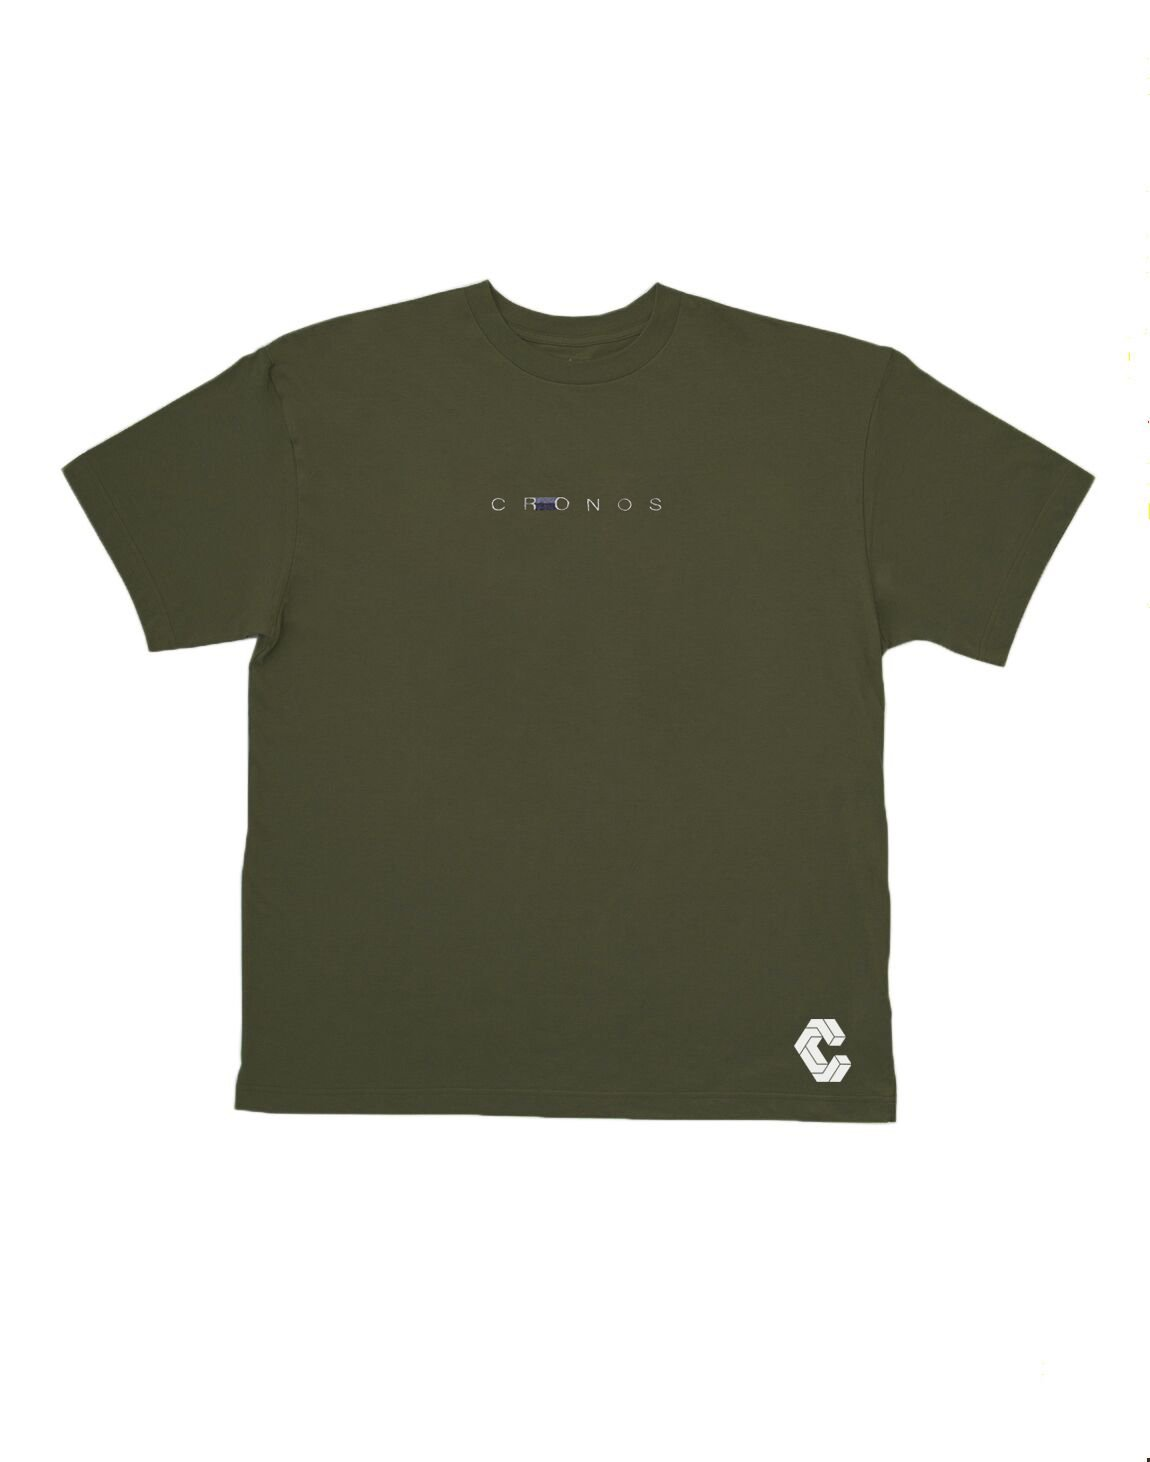 <img class='new_mark_img1' src='https://img.shop-pro.jp/img/new/icons55.gif' style='border:none;display:inline;margin:0px;padding:0px;width:auto;' />CRONOS STITCH LOGO OVER SIZE T-SHIRTS【KHAKI】